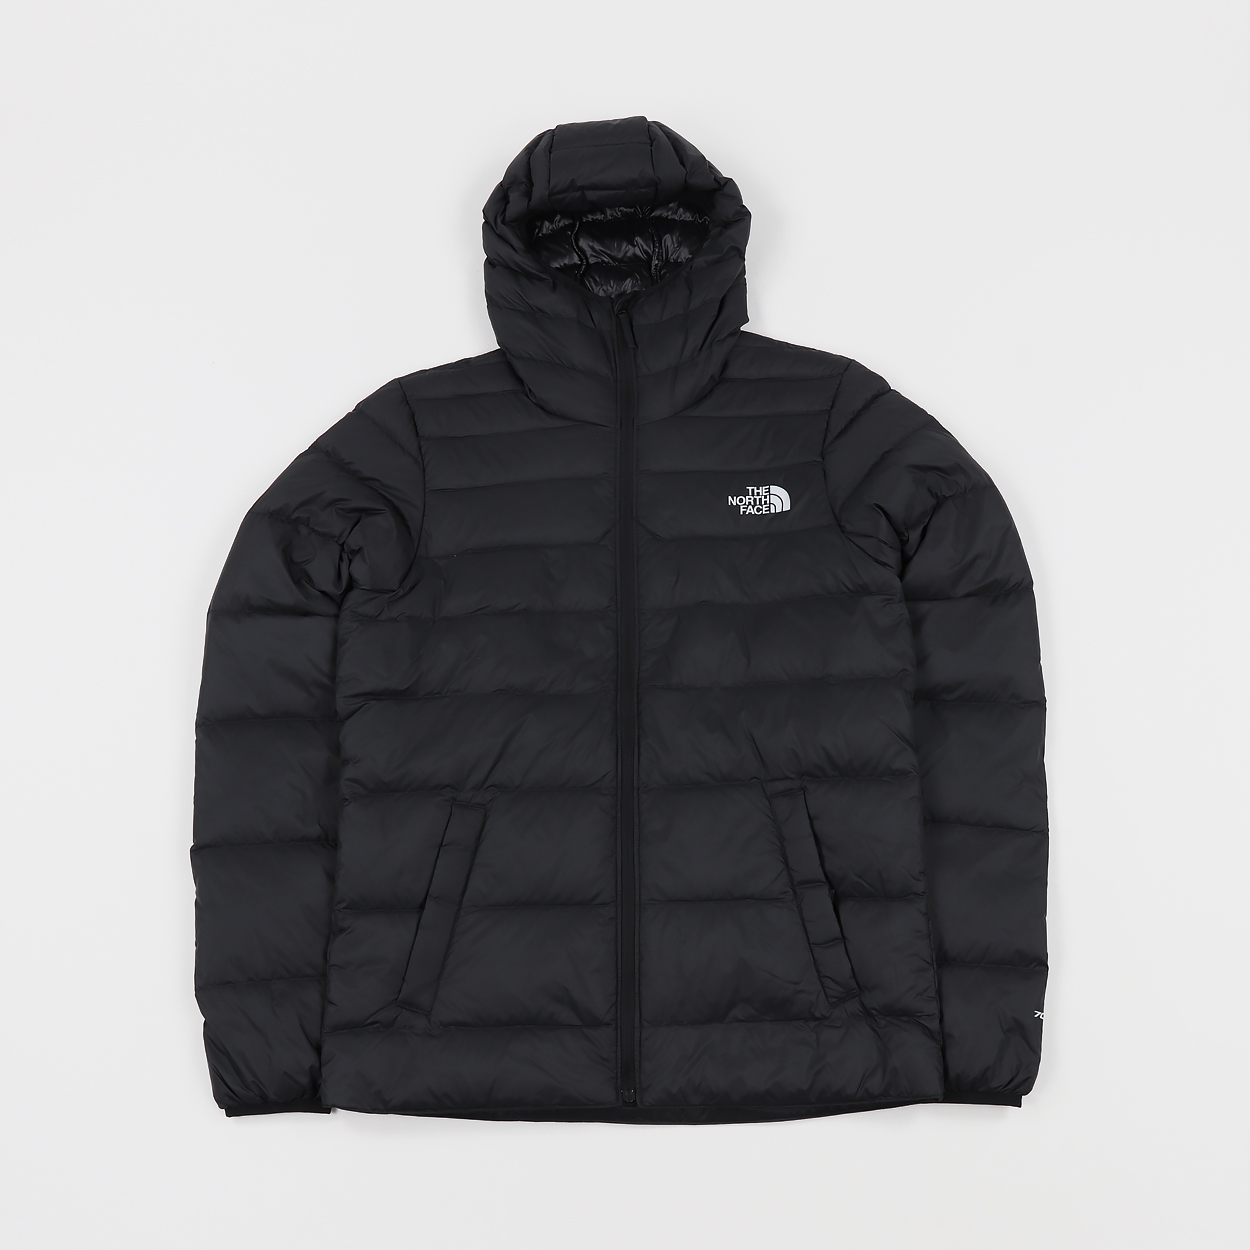 The North Face Winter West Peak Goose Down Polyester Jacket Black £126.00 43126337f